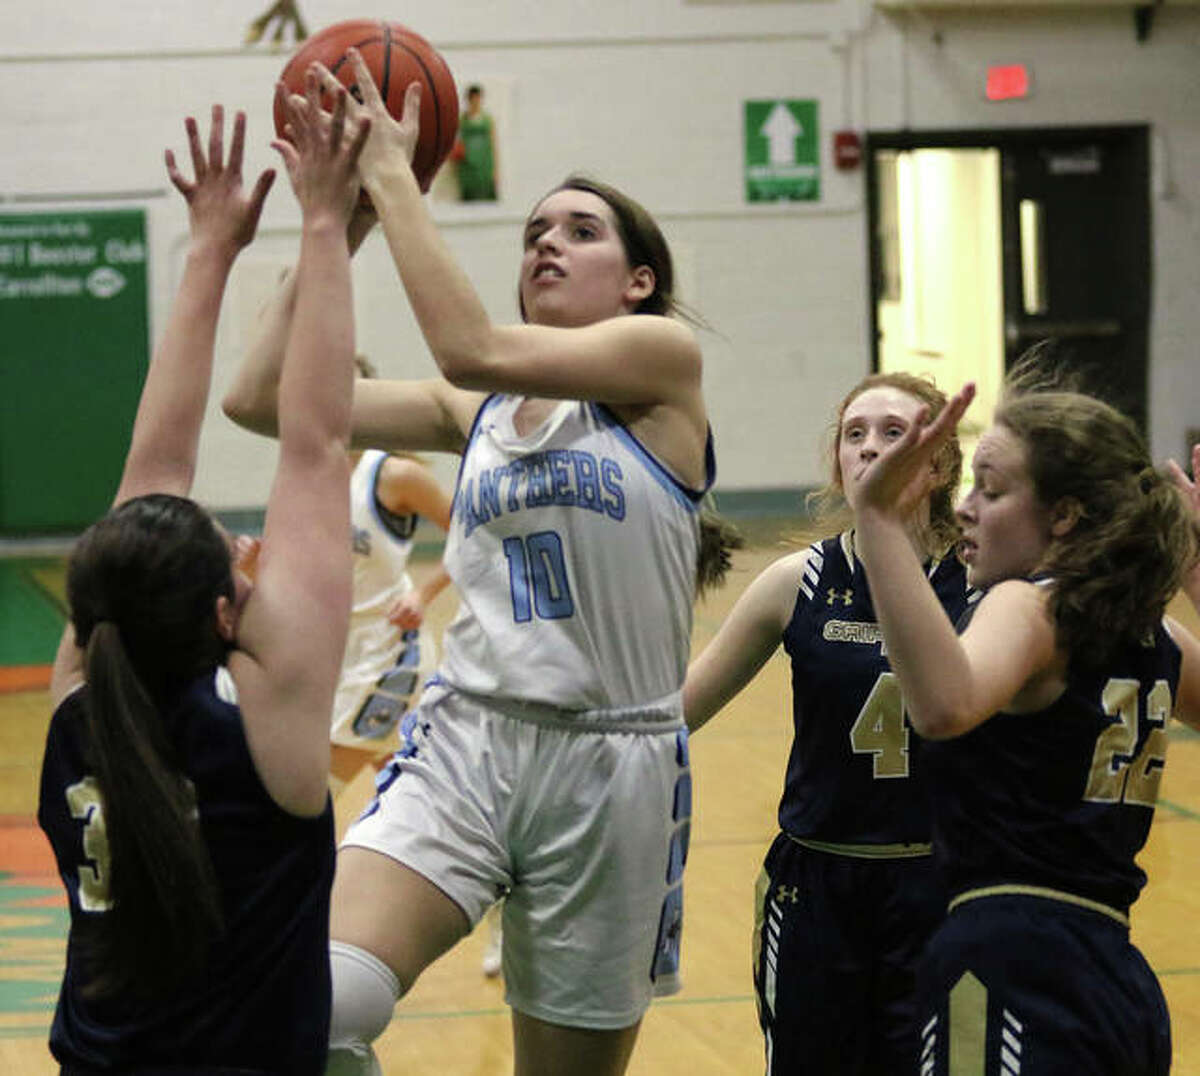 Jersey's Abby Manns (10) shoots over Father McGivney's Madison Webb (left) after getting past Anna McKee and Charlize Luehmann on Thursday night in the semifinals of the Carrollton Tournament.